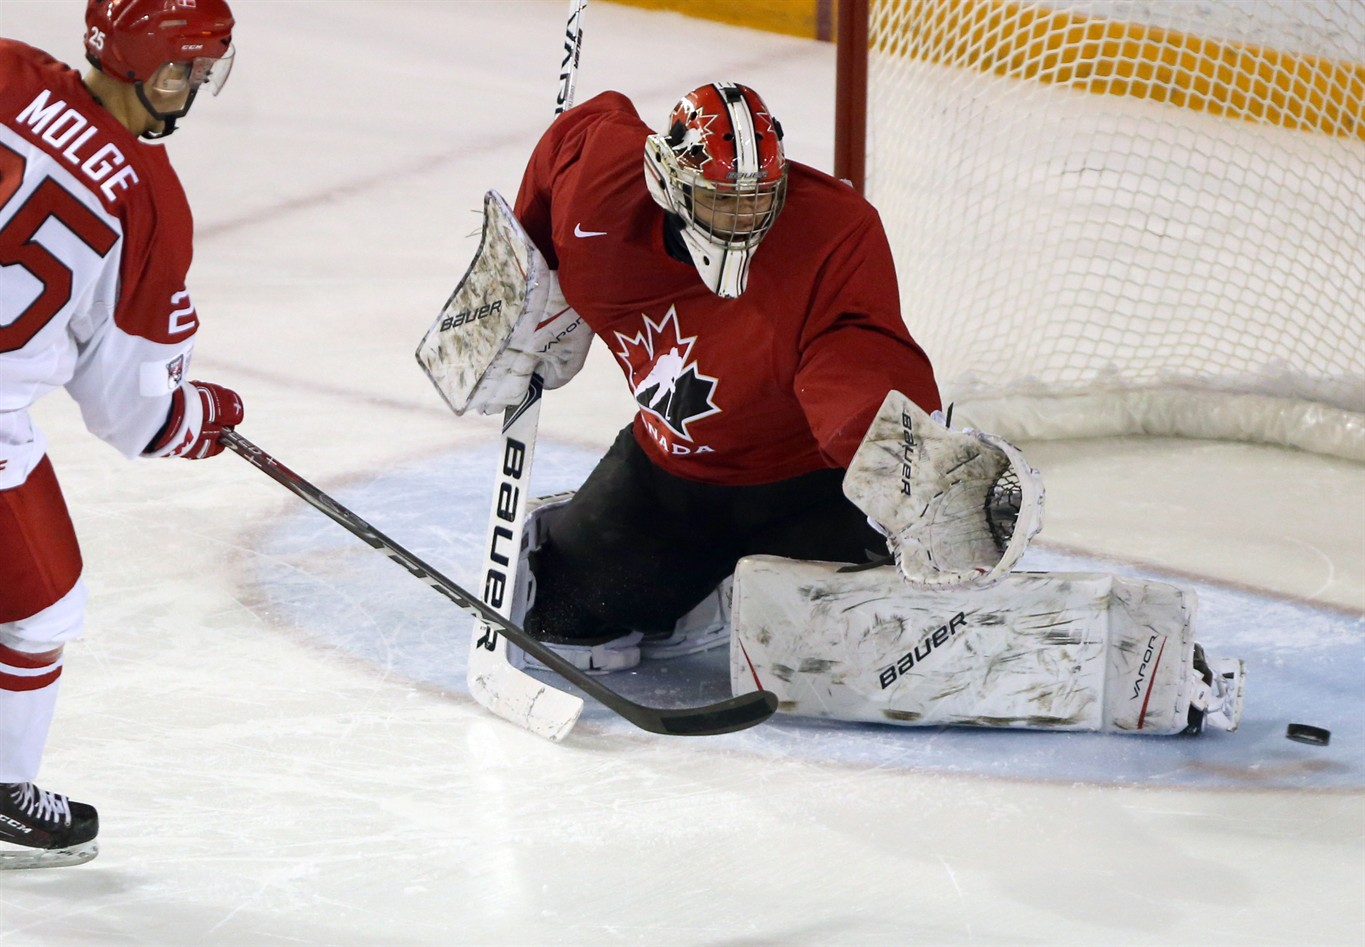 Dipietro Tells Canada To Win World Juniors After Being Cut From Team